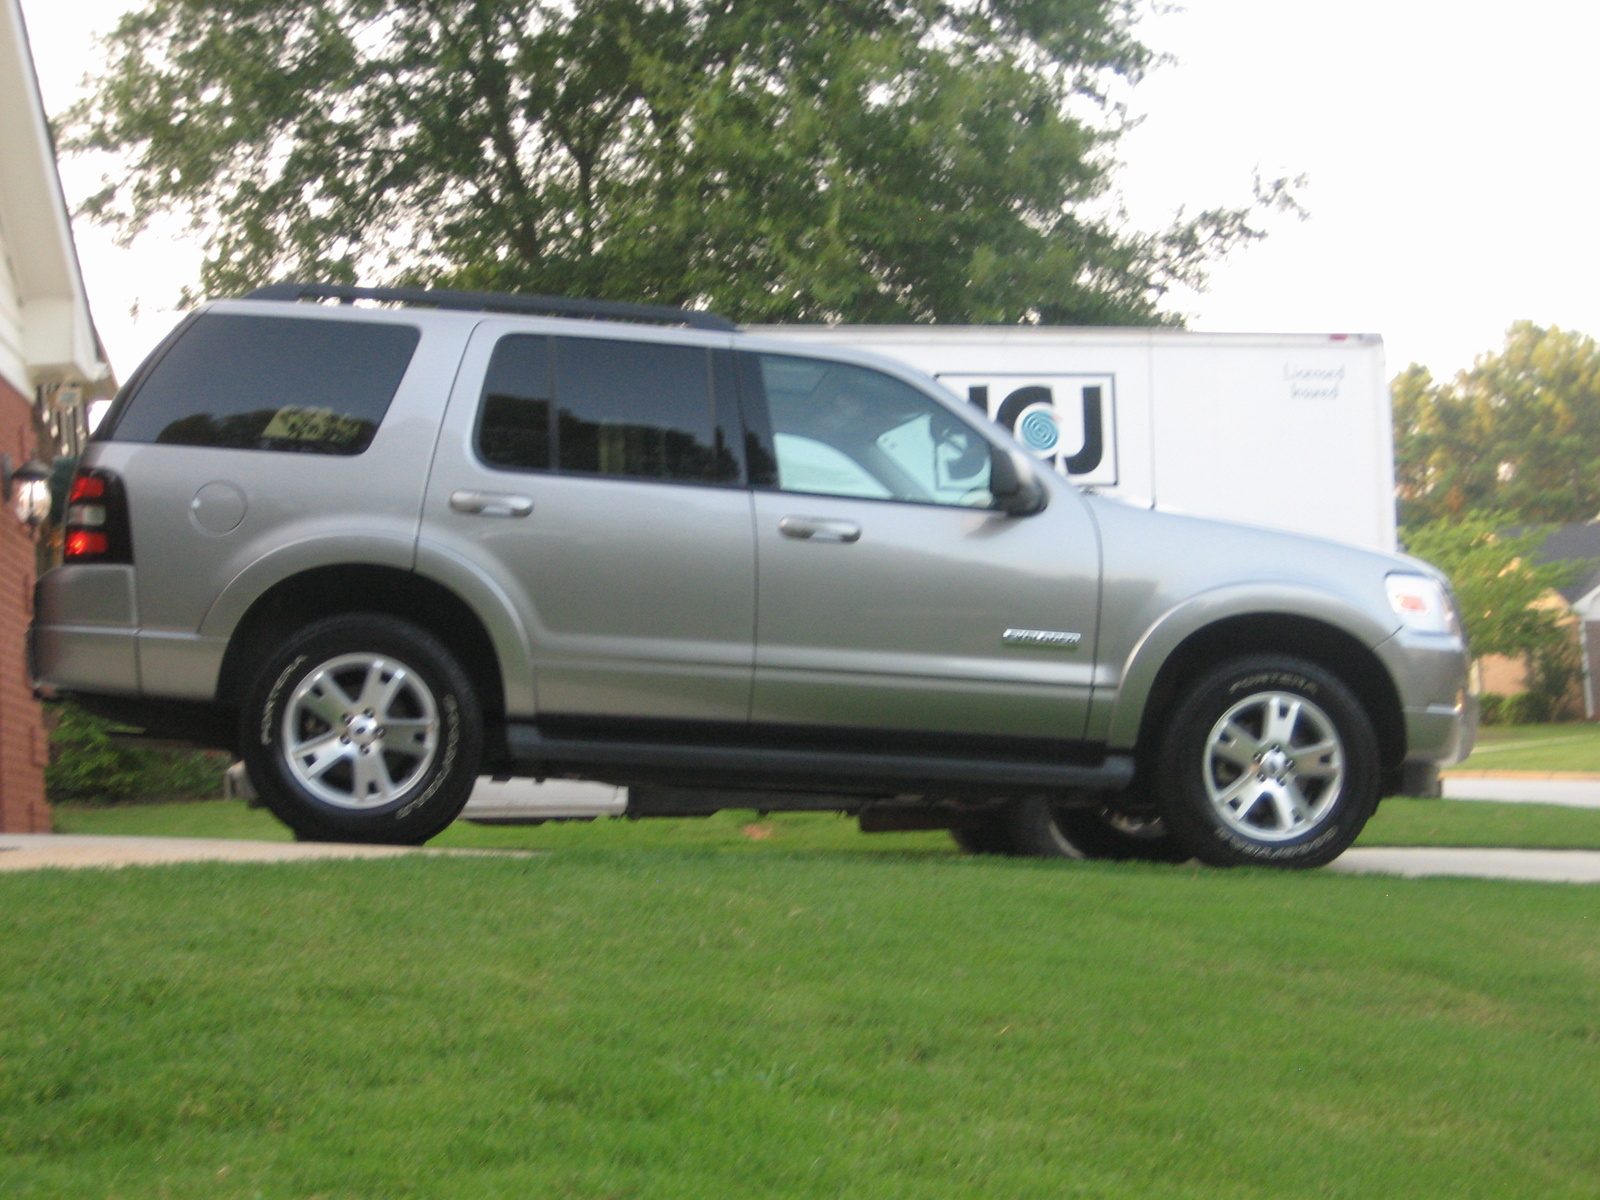 2008 ford explorer suv pictures information and specs. Black Bedroom Furniture Sets. Home Design Ideas